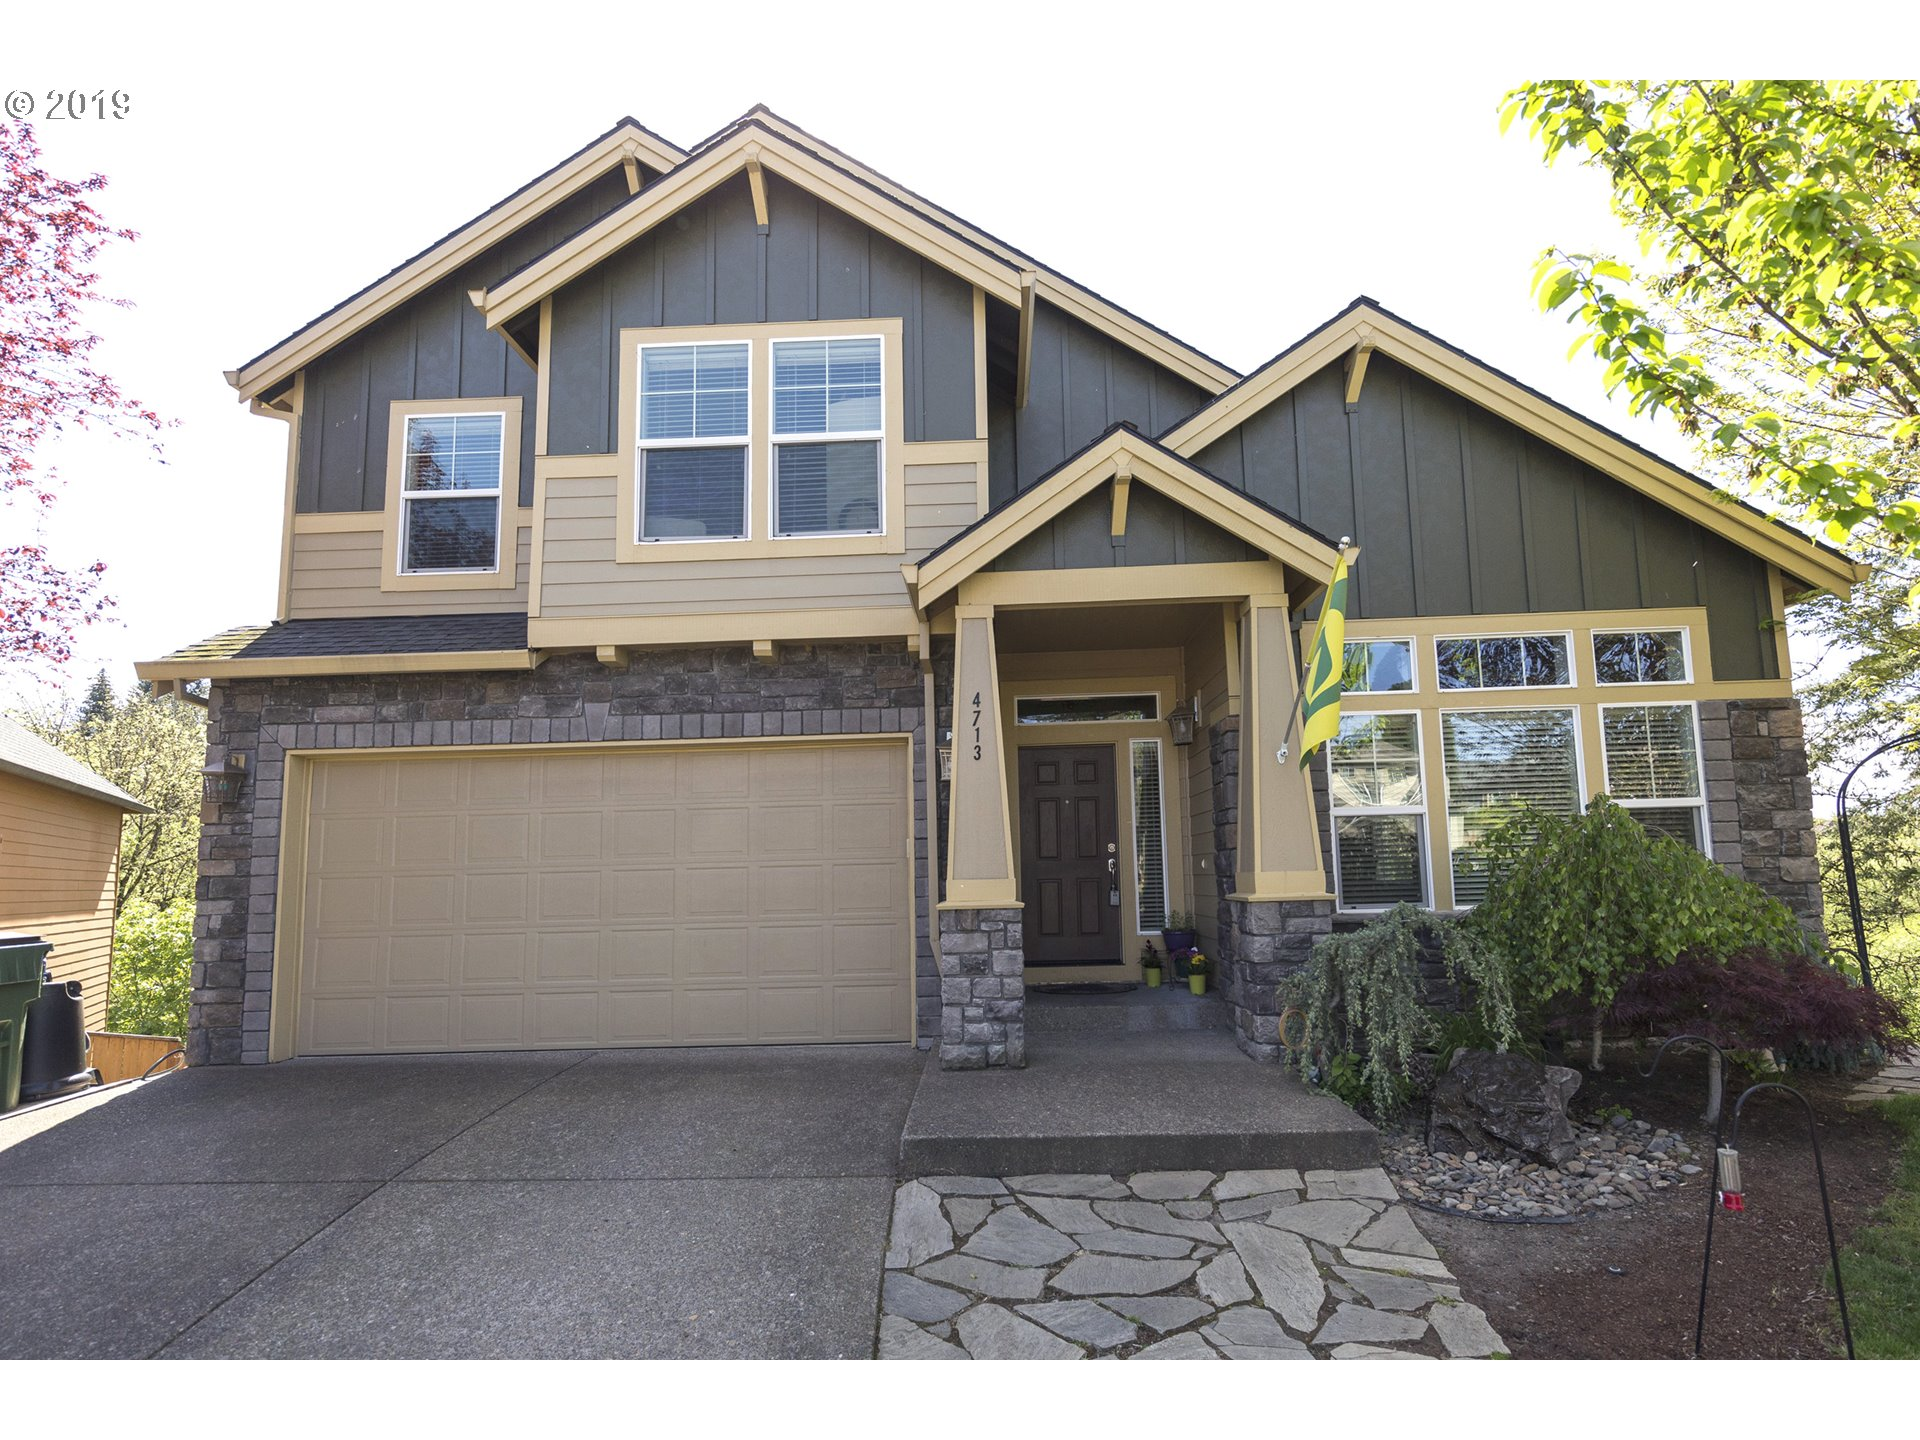 4713 MASTERS DR, Newberg OR 97132